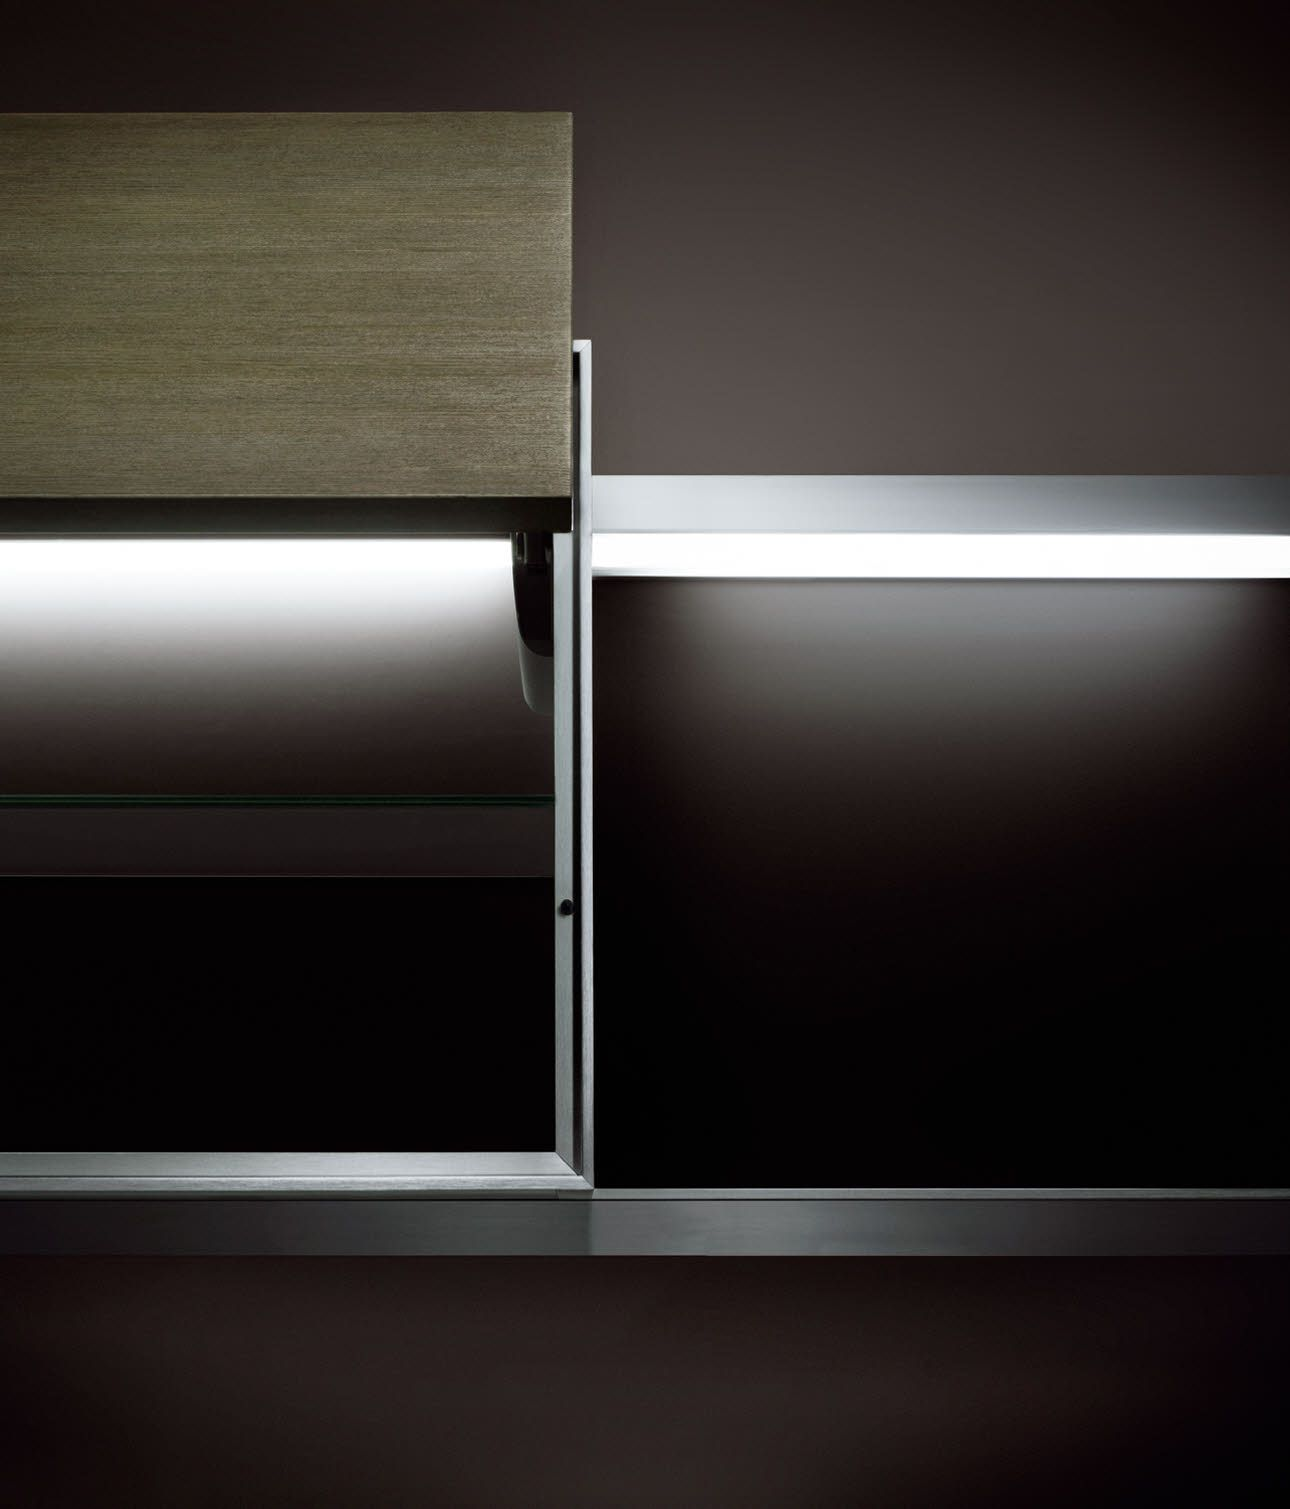 Porsche Design Küche Poggenpohl Poggenpohl Porsche Design Kitchen P7340 Lighting Poggenpohl